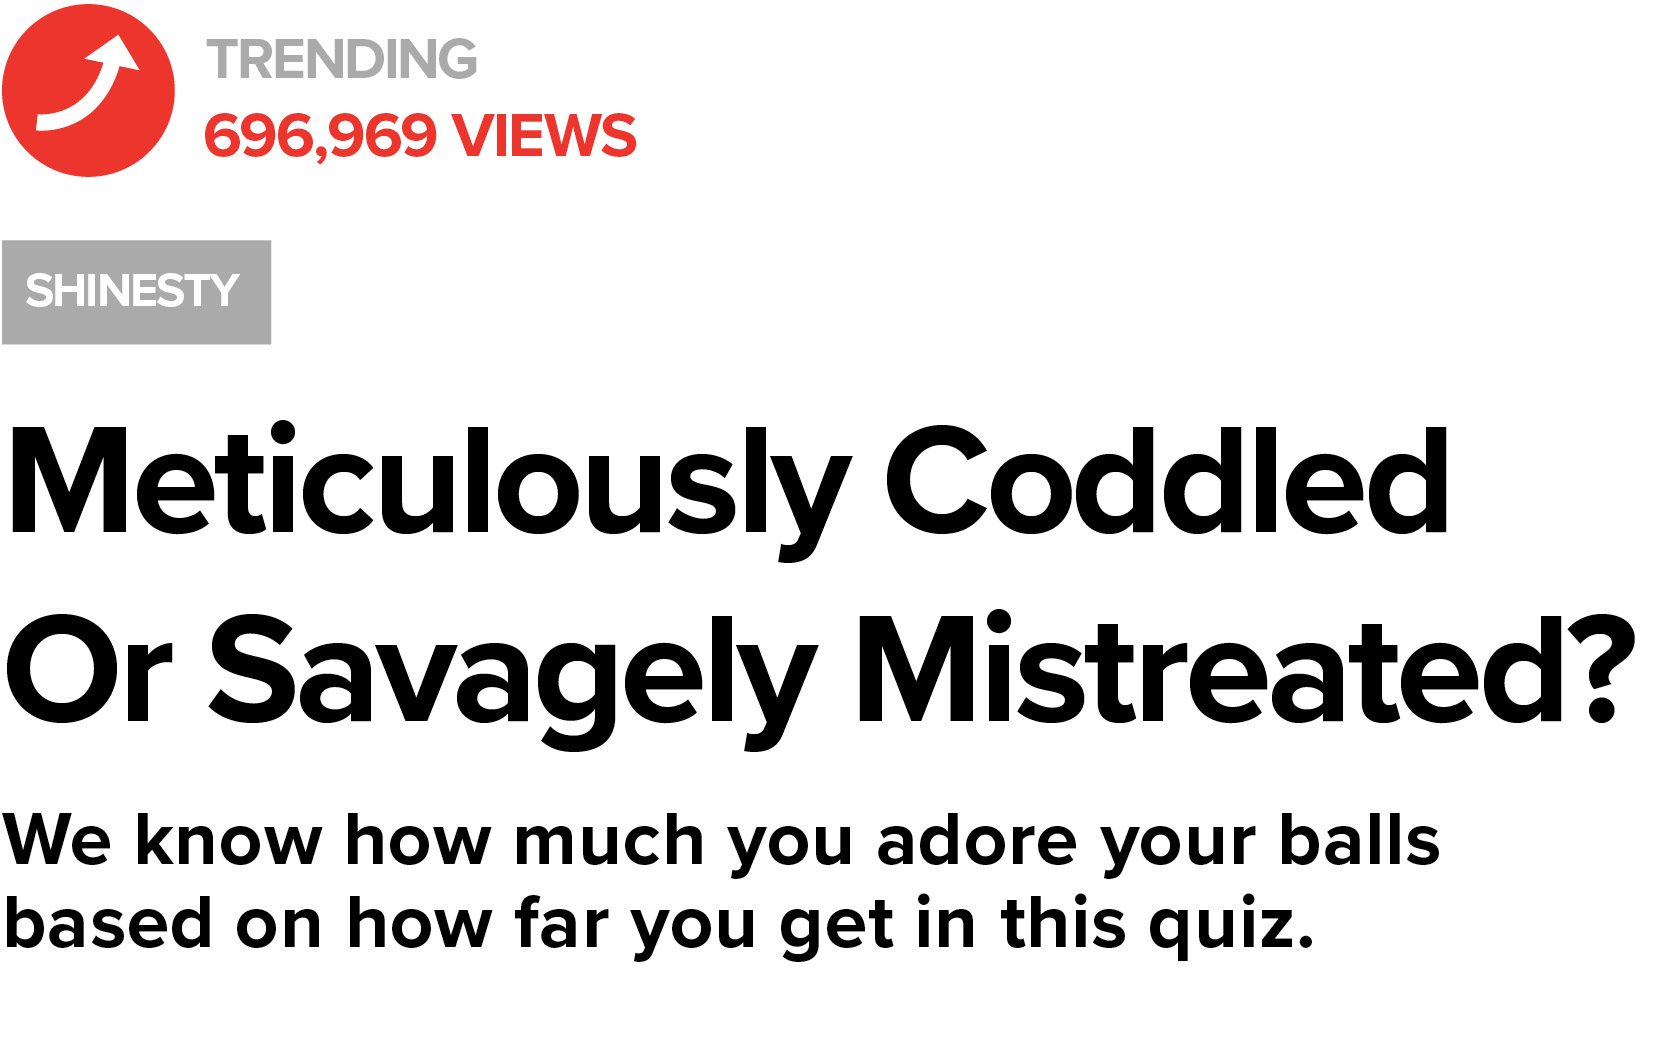 We know how much you adore your balls based on how far you get in this quiz.